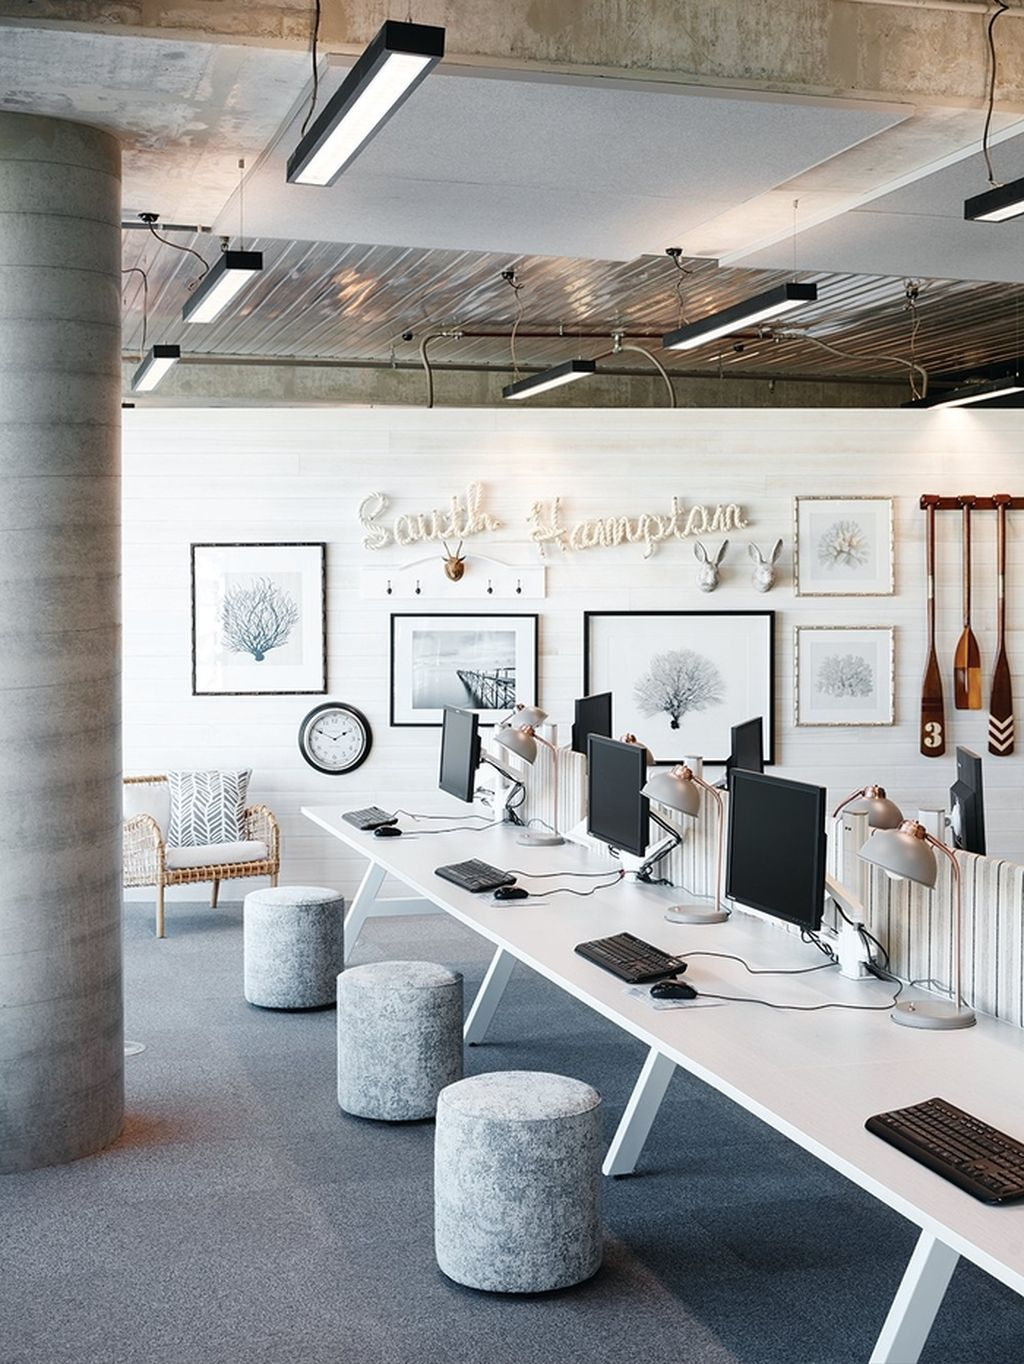 Modern And Cozy Office Interior Design Ideas To Makes You Feel Comfortable 17